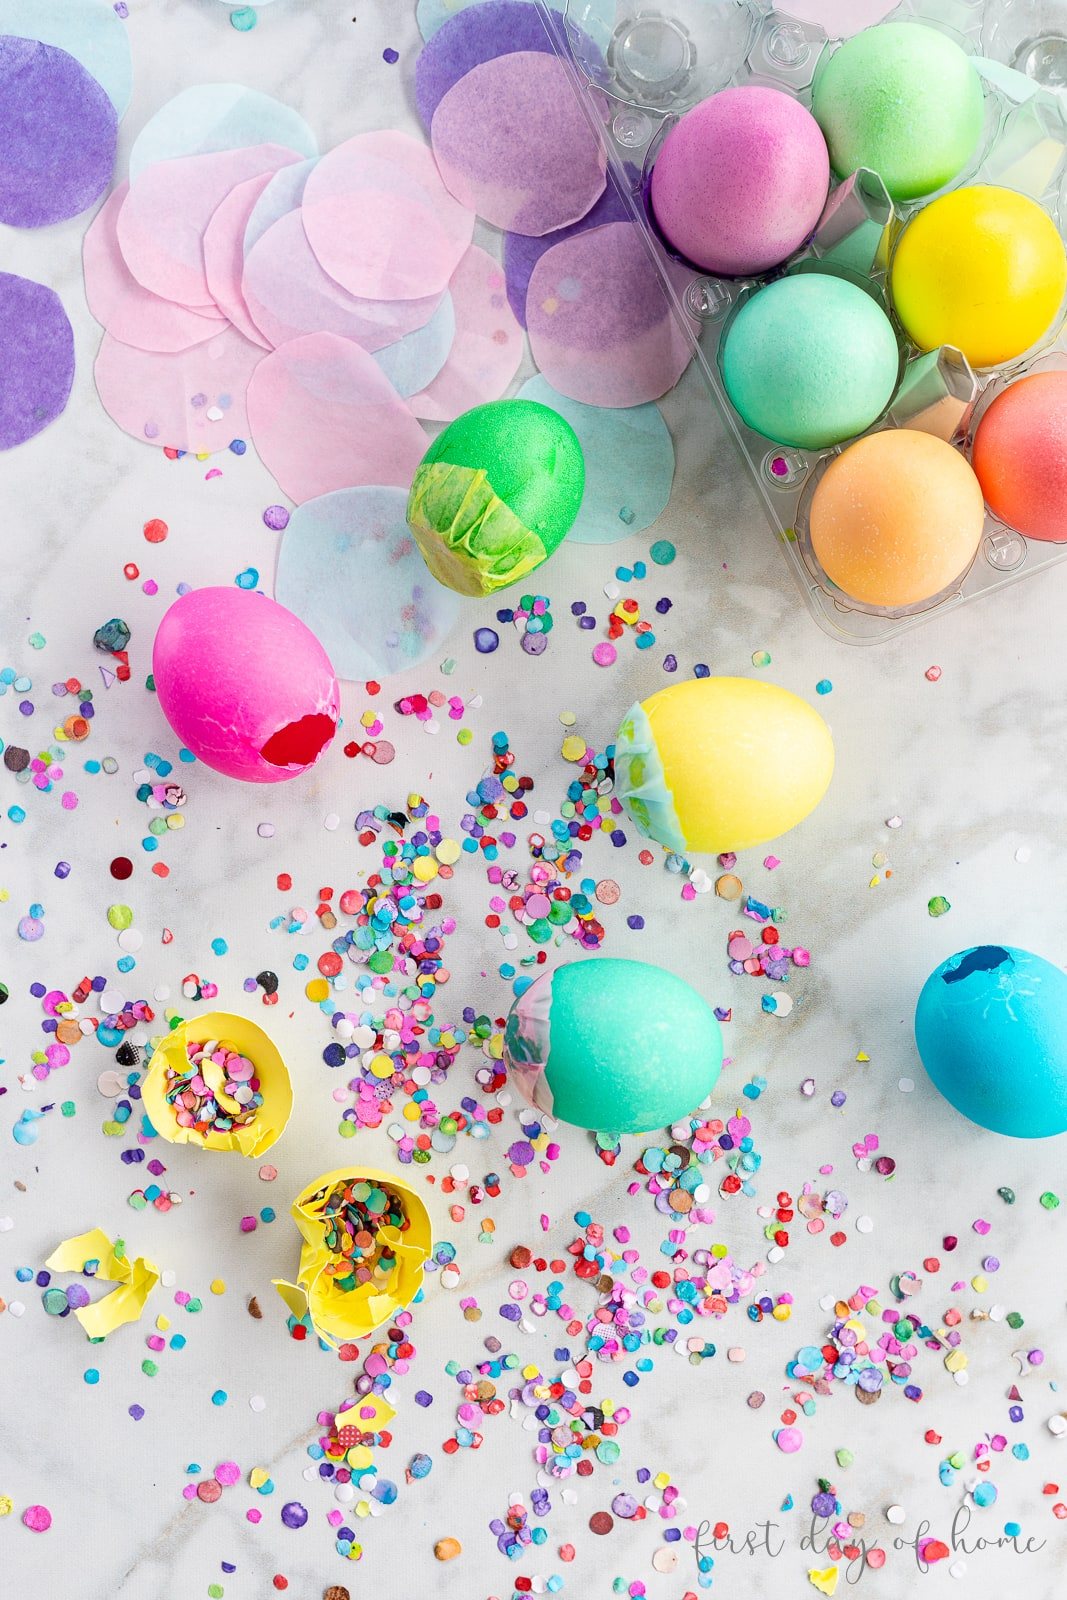 Confetti filled decorated Easter eggs called cascarones